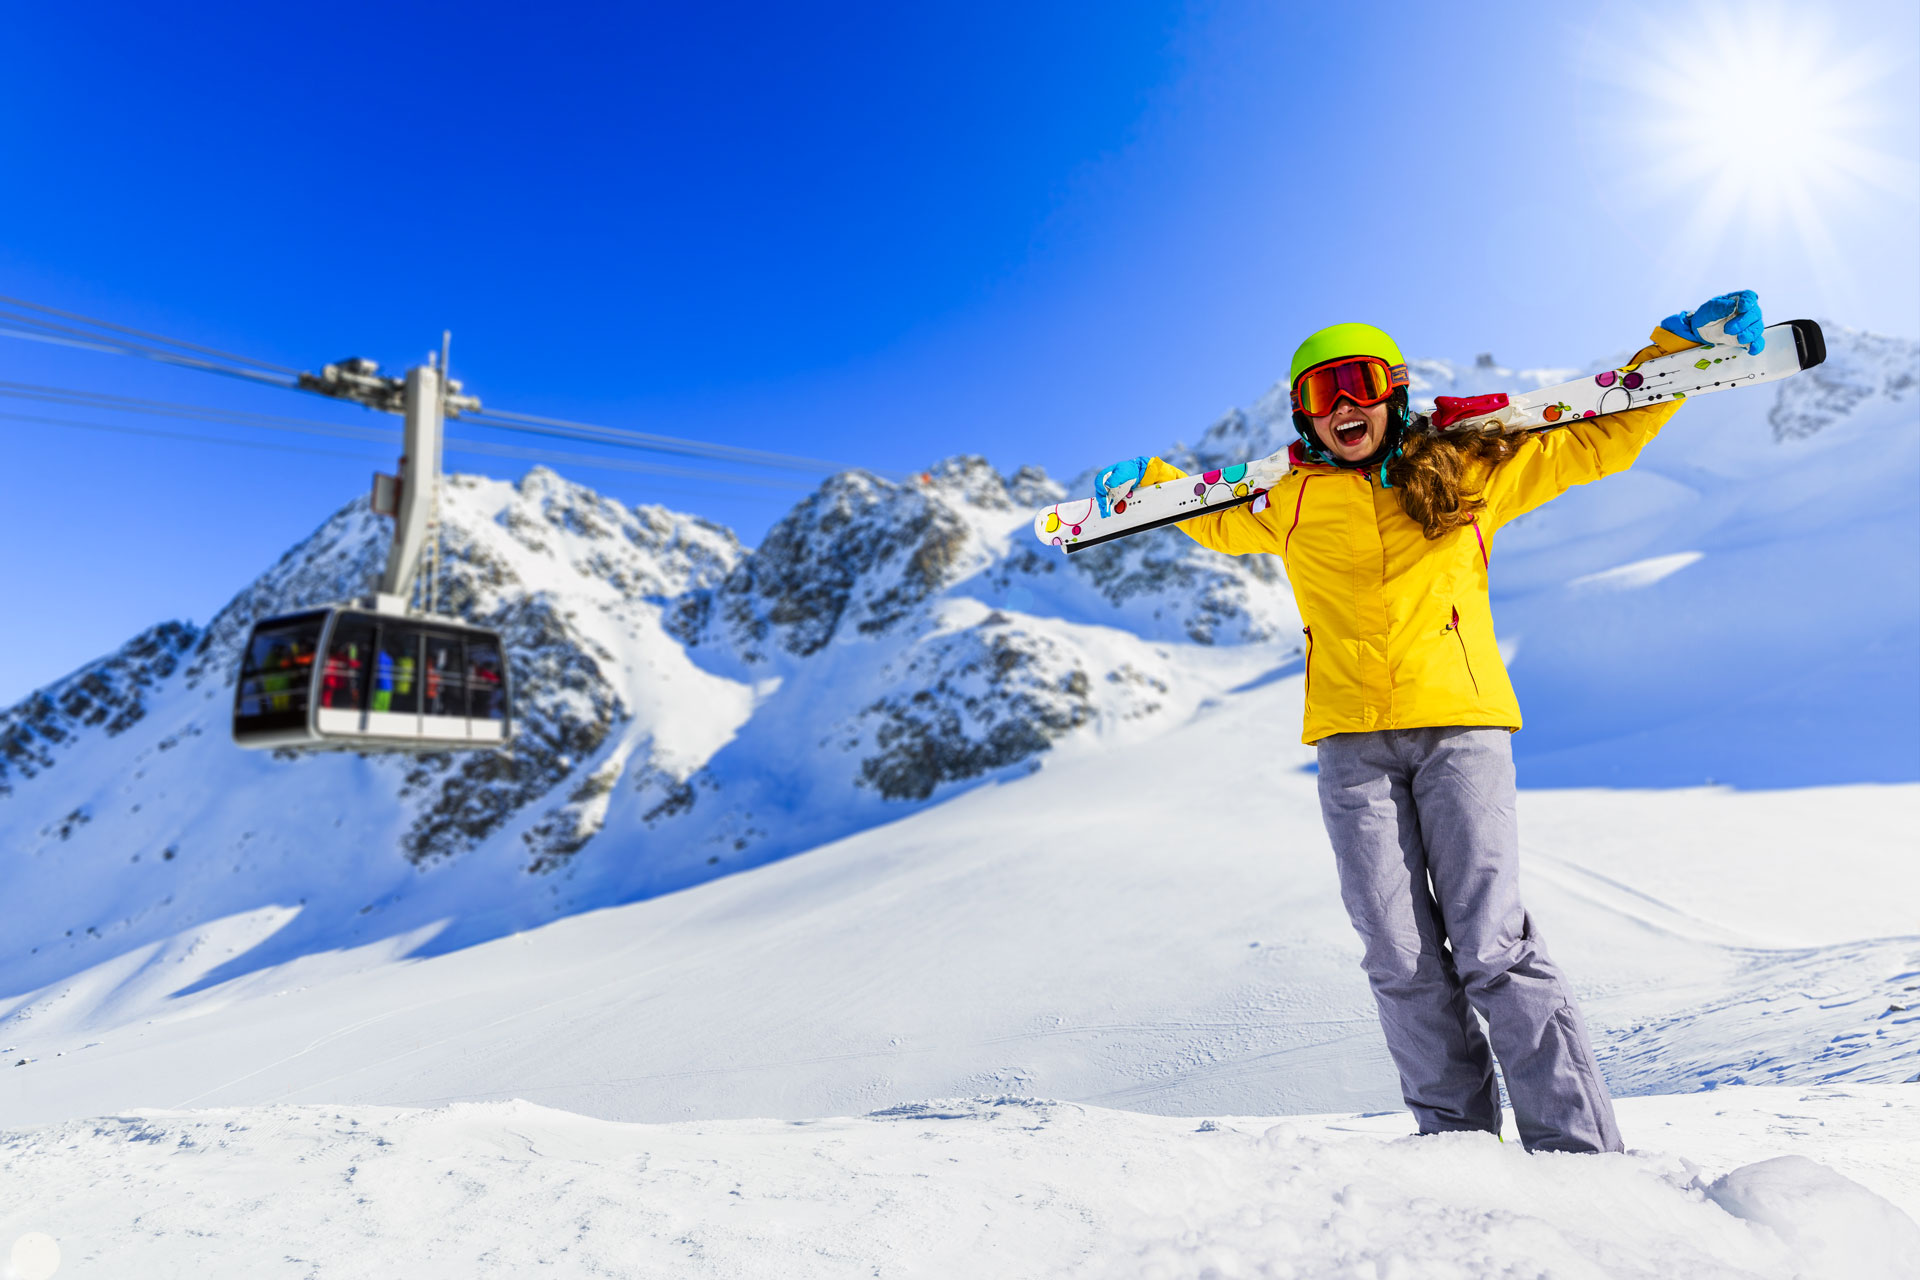 Skiing-in-Verbier-Switzerland-.jpg